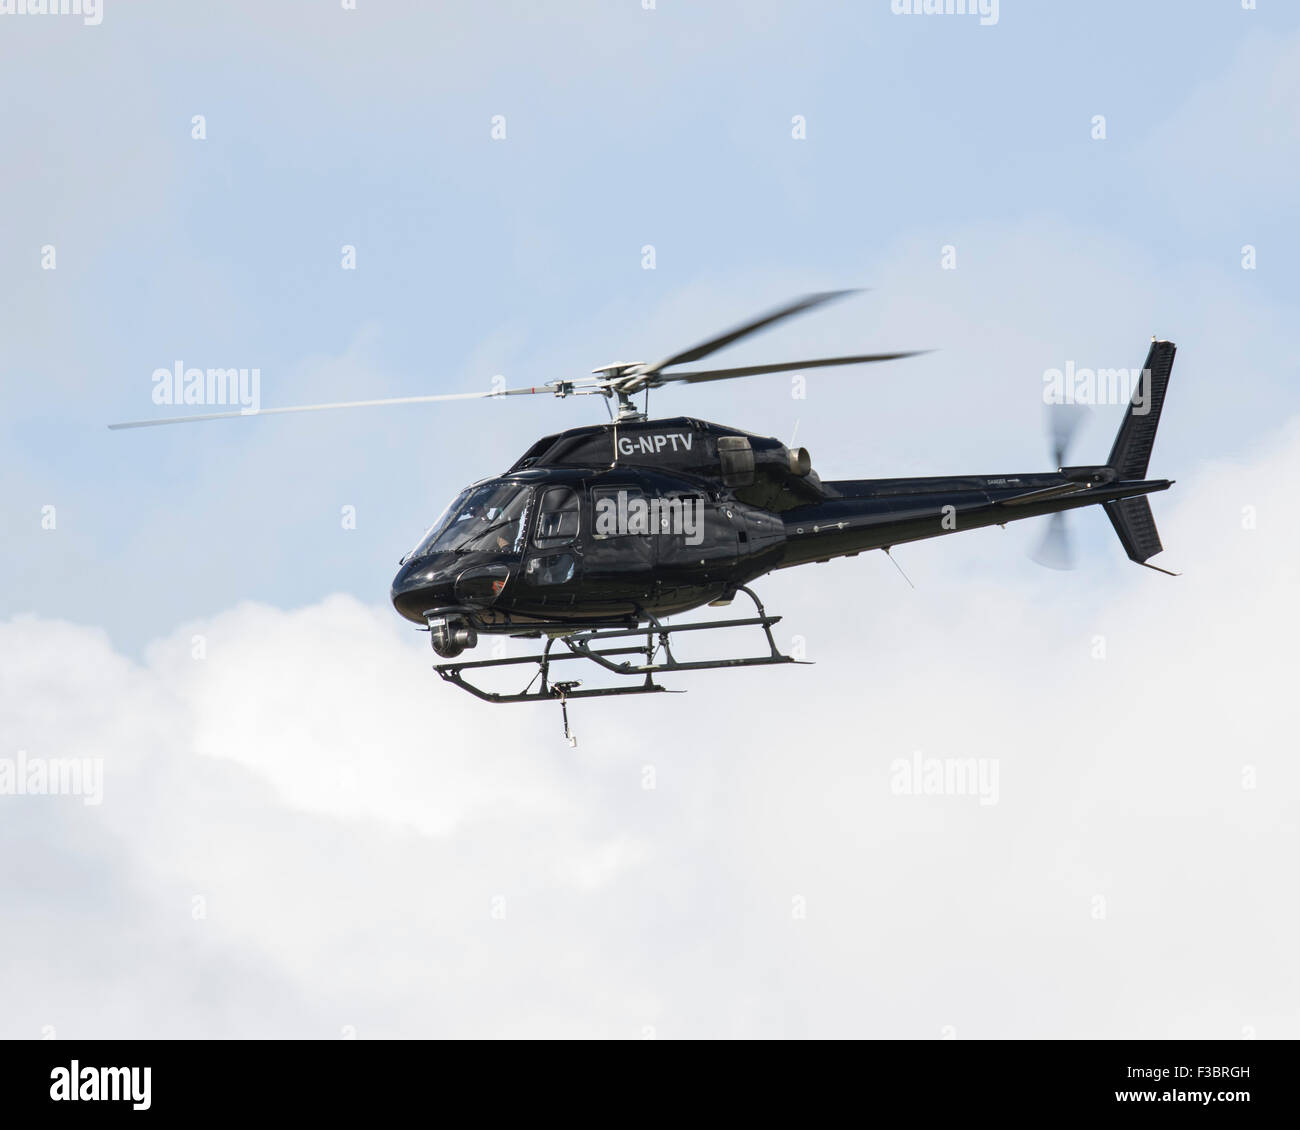 Elicottero 355 : Airbus a np ifr twin squirrel elicottero g nptv riprese presso